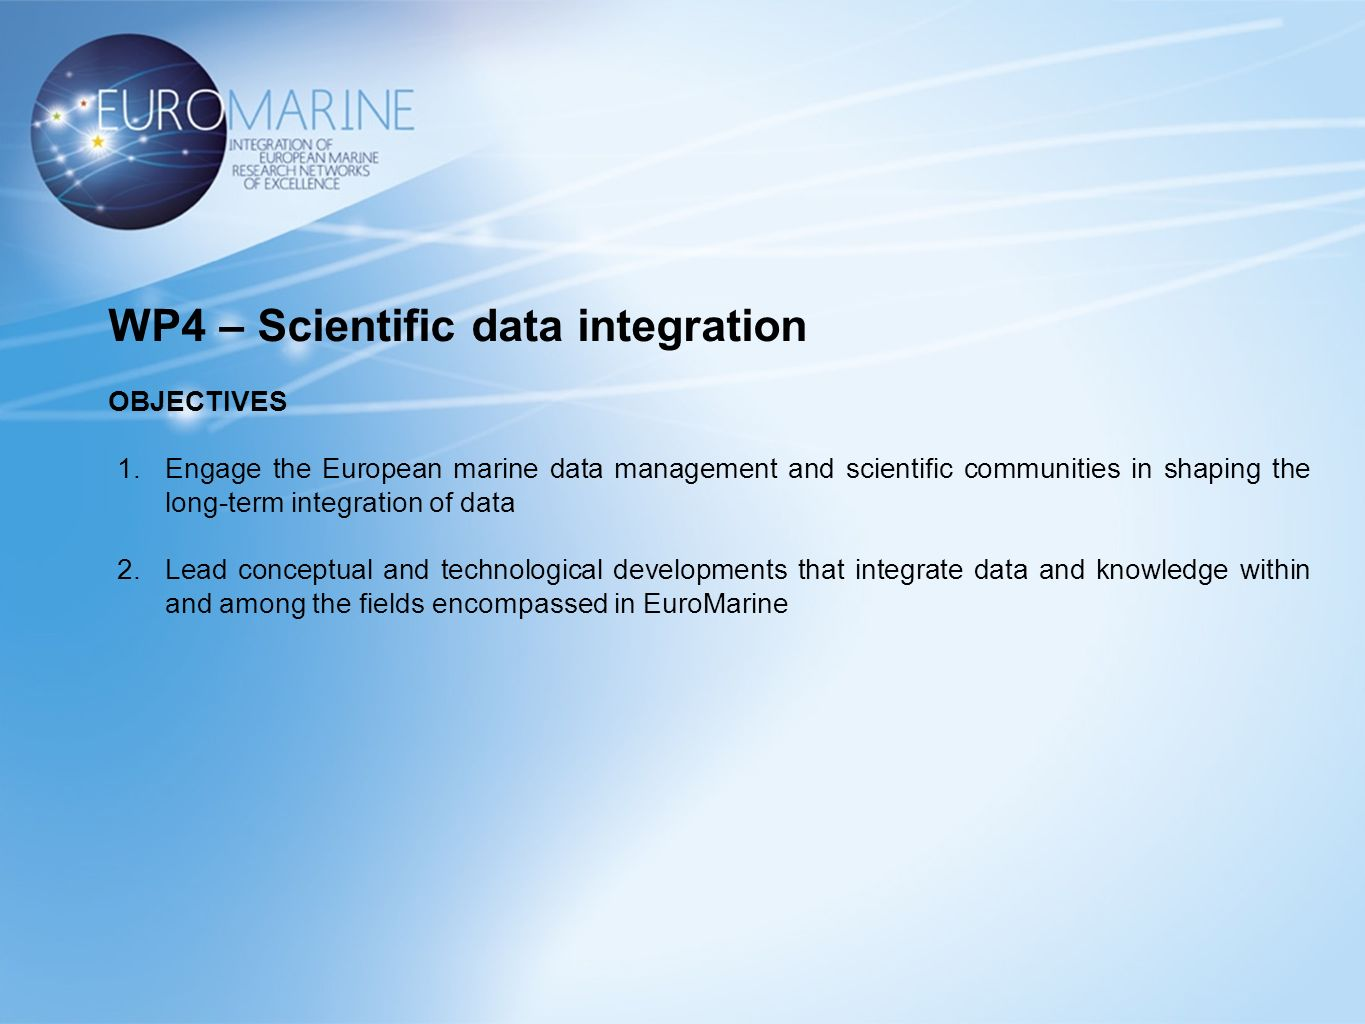 WP4 – Scientific data integration OBJECTIVES 1.Engage the European marine data management and scientific communities in shaping the long-term integration of data 2.Lead conceptual and technological developments that integrate data and knowledge within and among the fields encompassed in EuroMarine